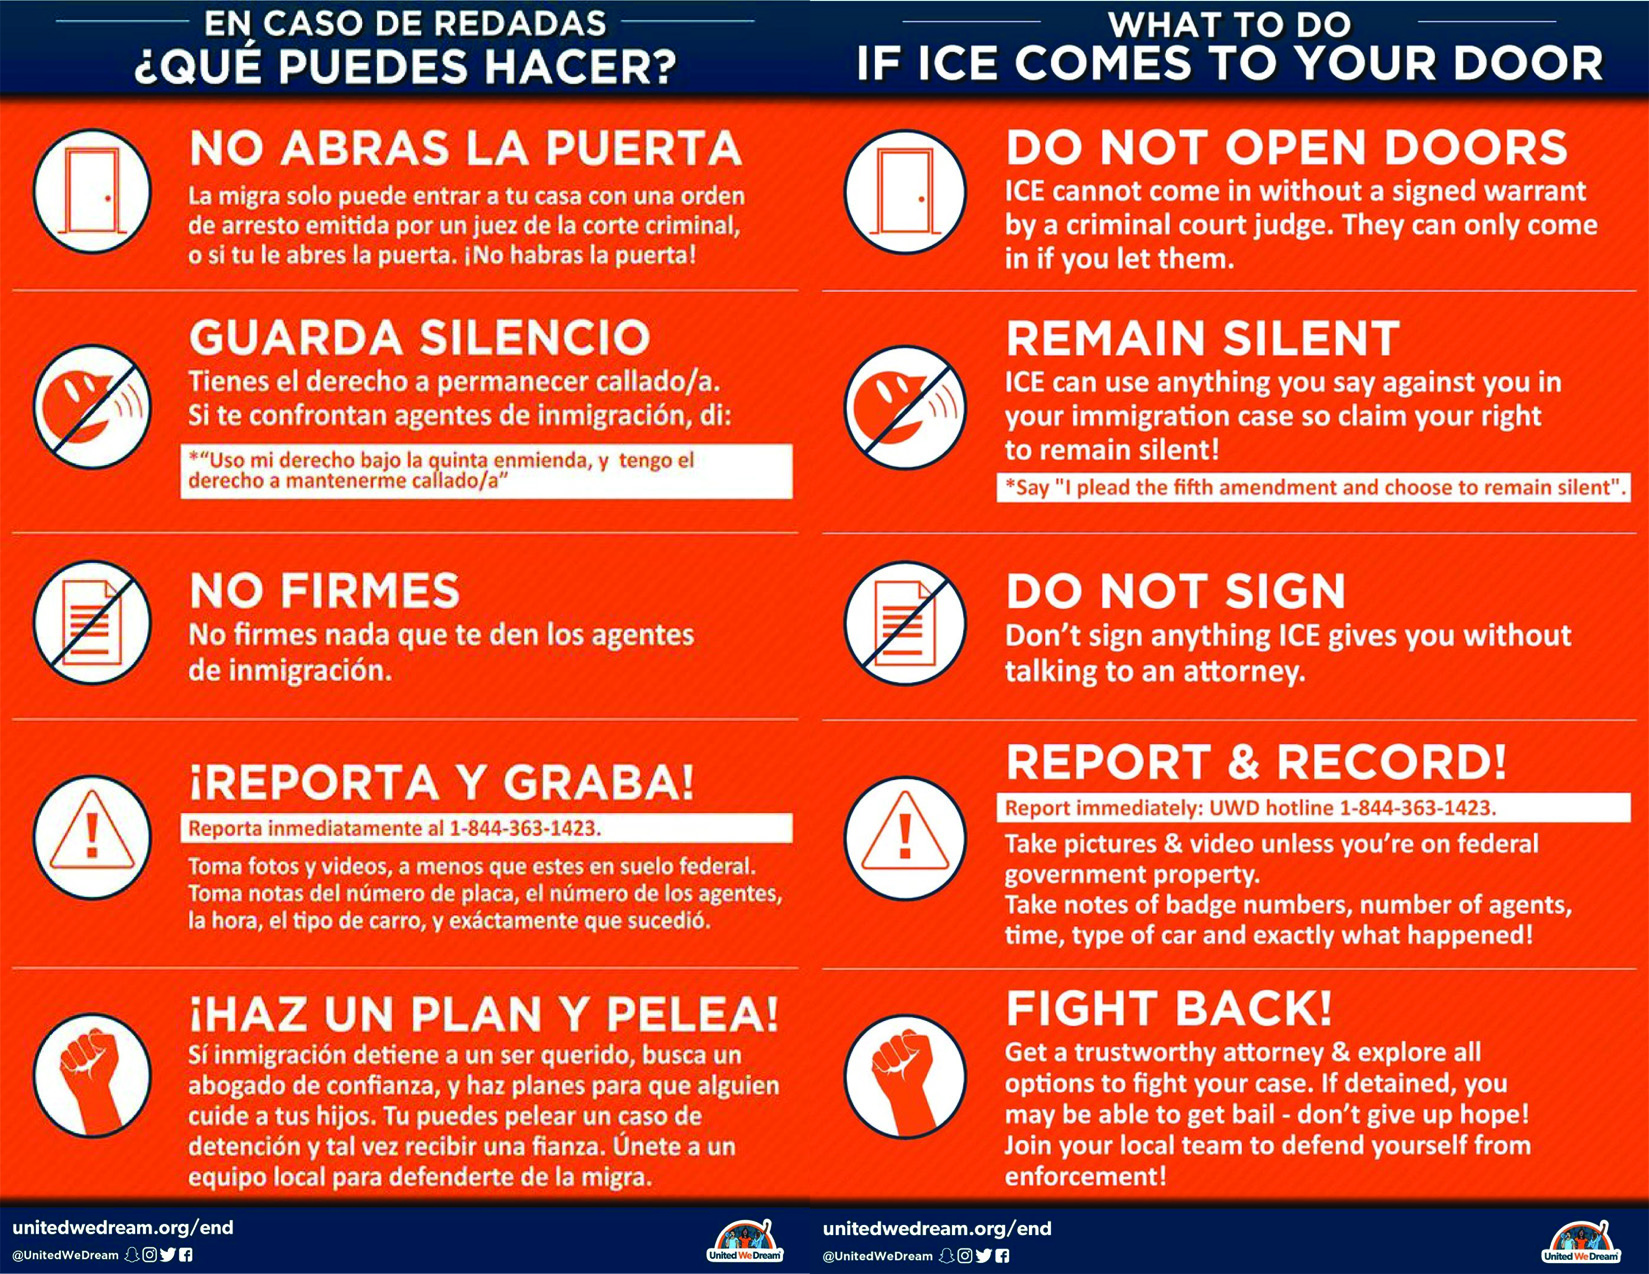 NYC Prepares for Impending ICE Raids  What You Should Know